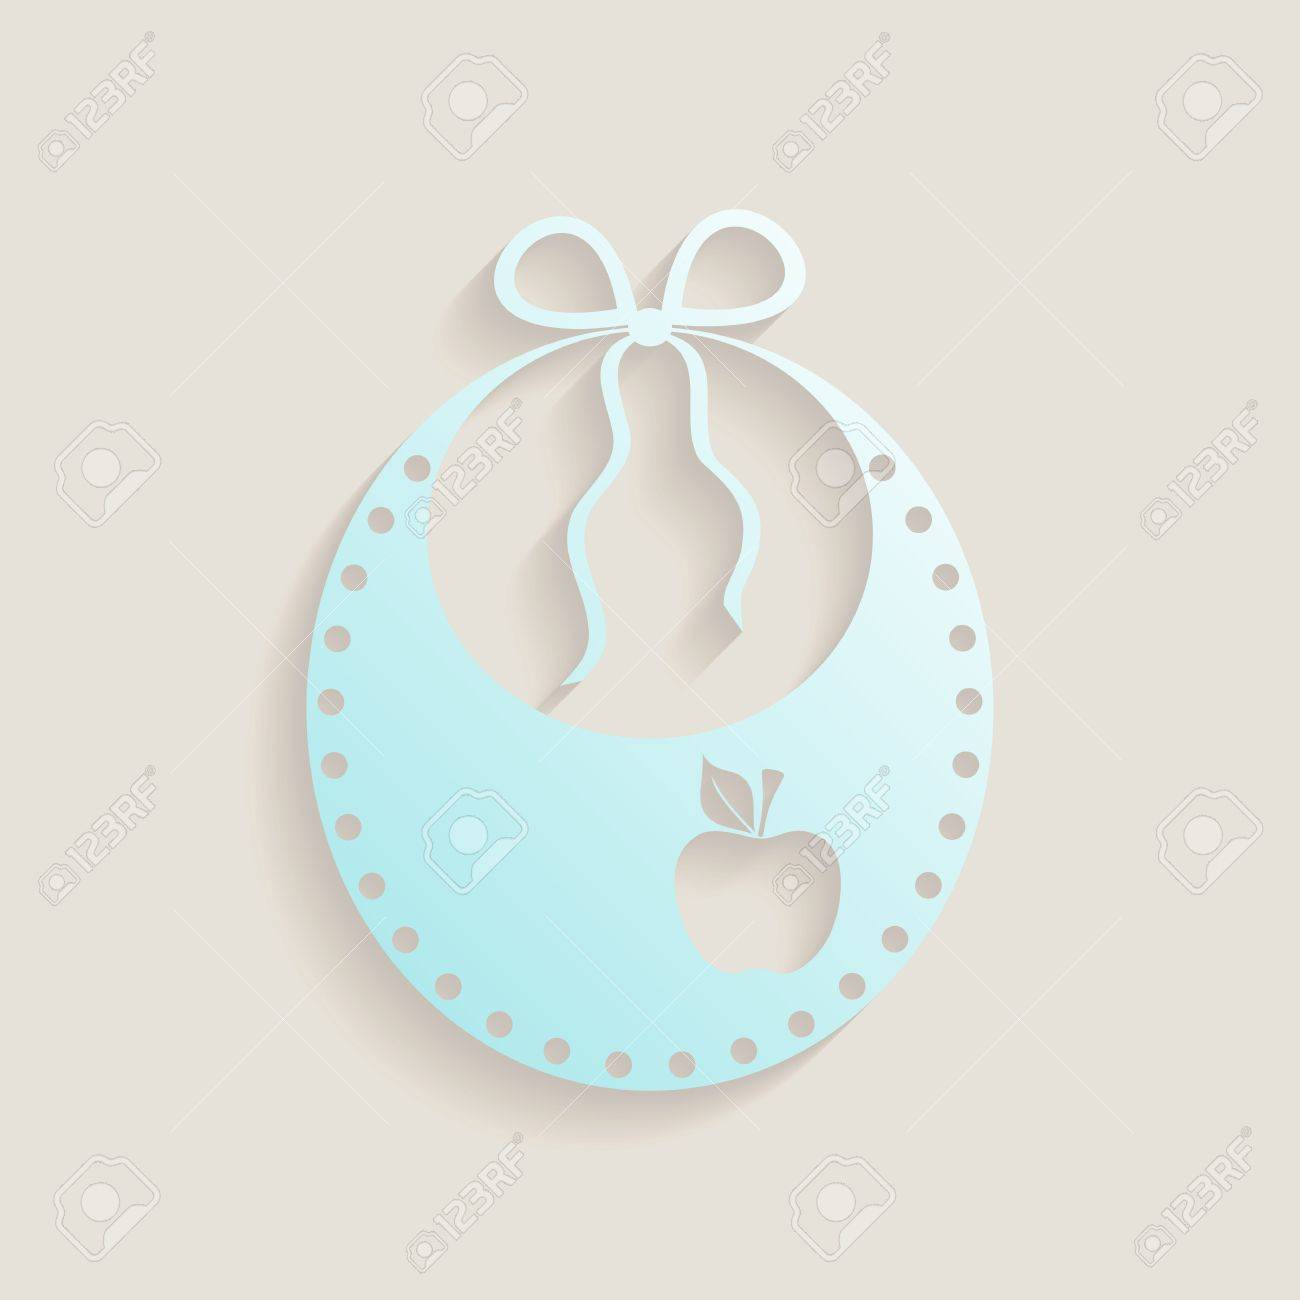 Simple Baby Shower Invitation Card With Baby Bib Stock Vector   28924254